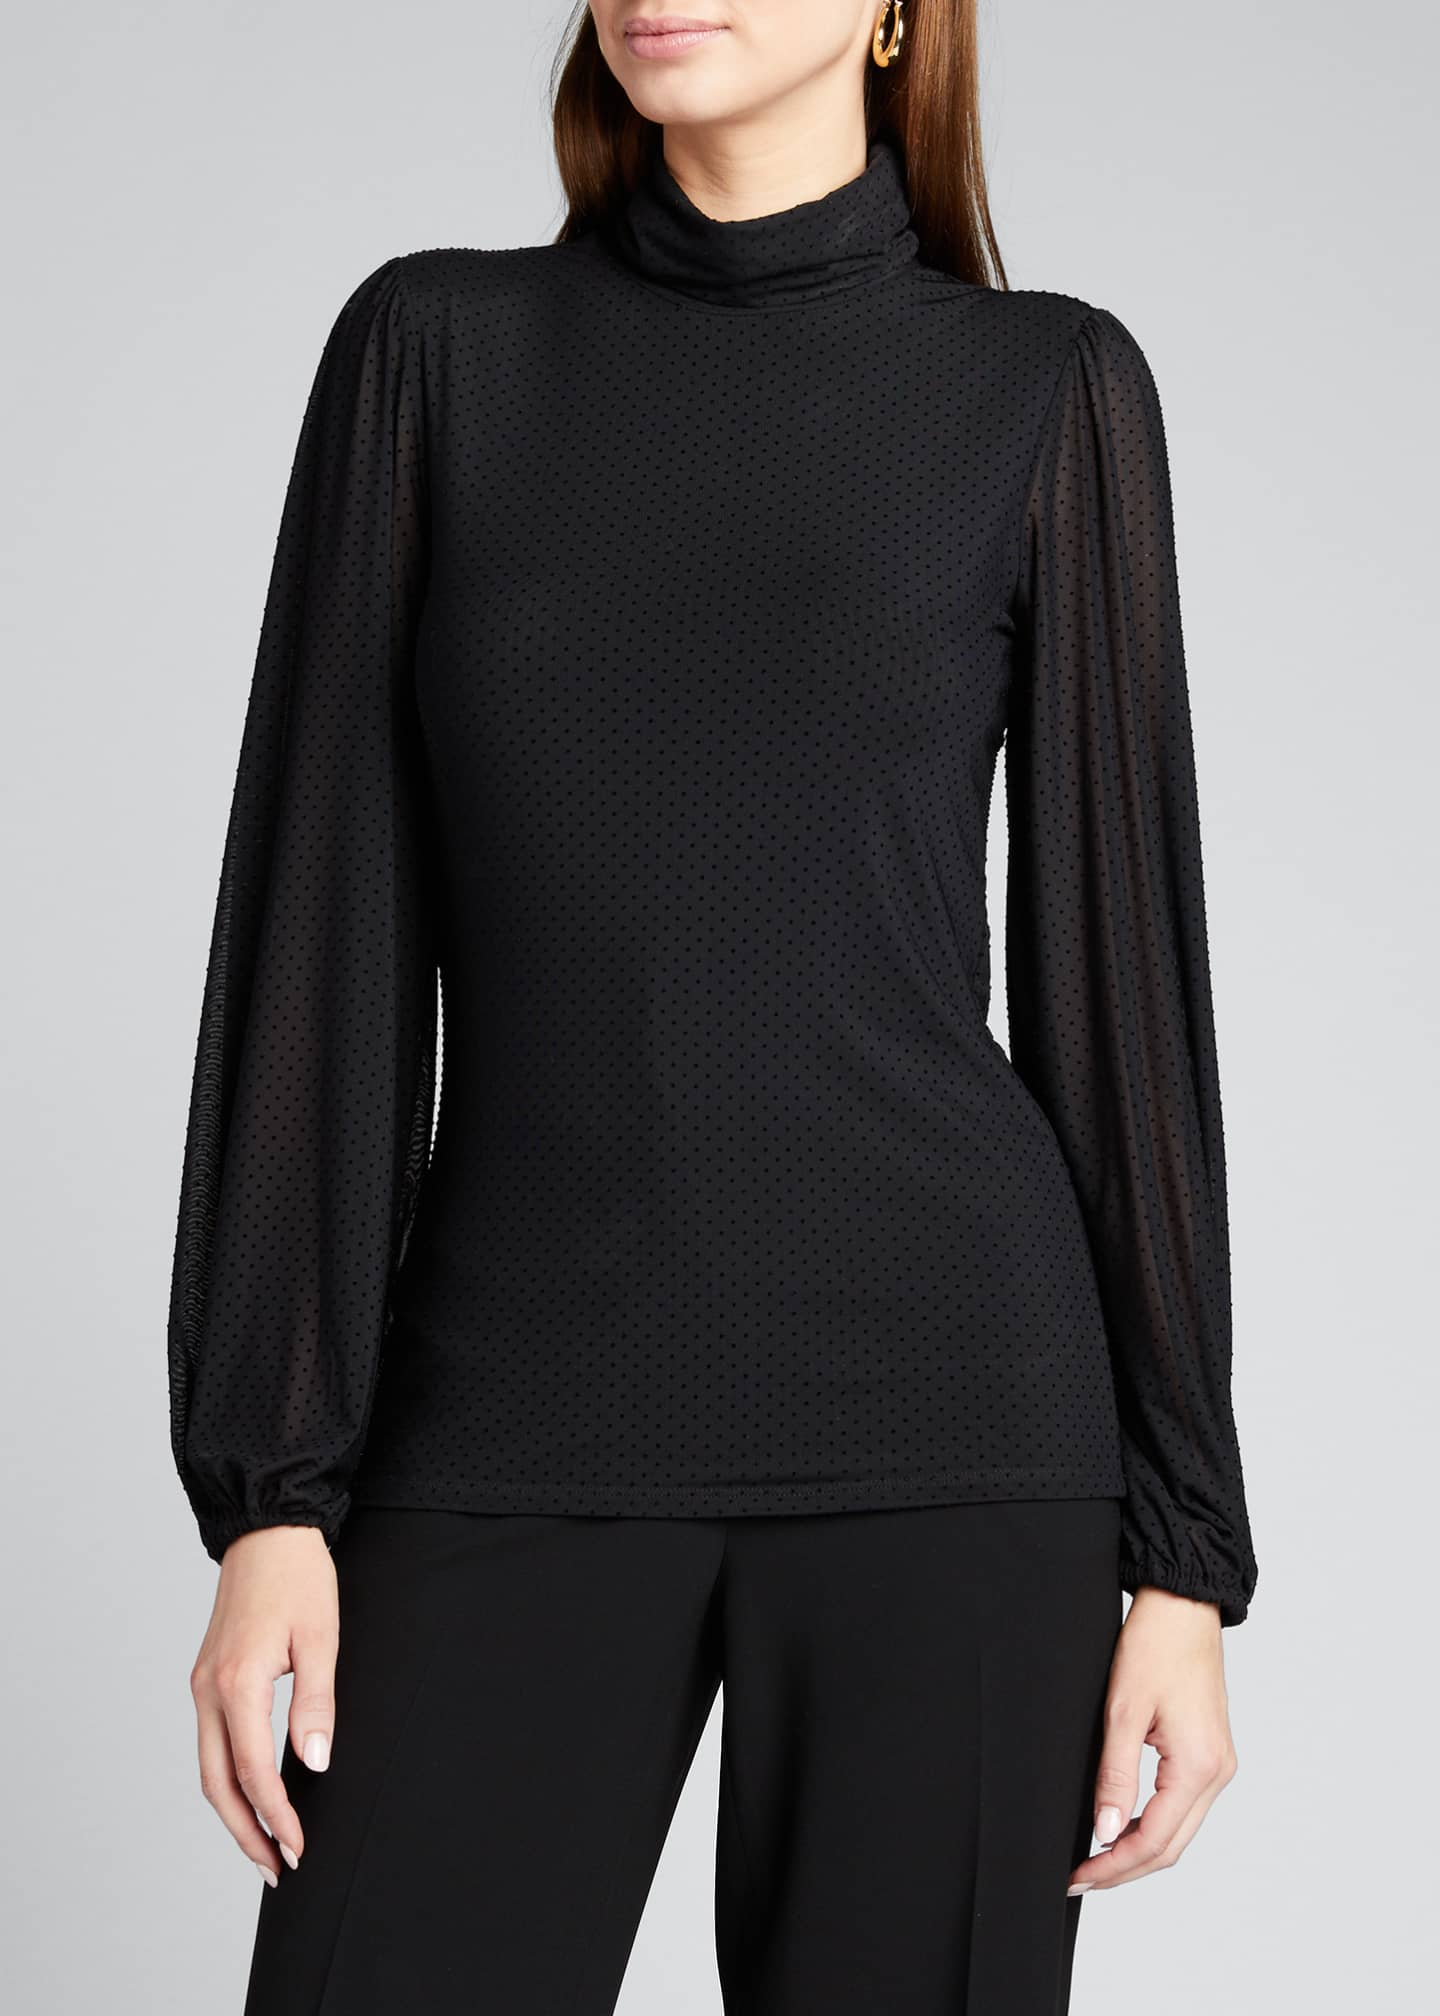 Image 3 of 5: Dotted Mesh Turtleneck Long-Sleeve Blouse